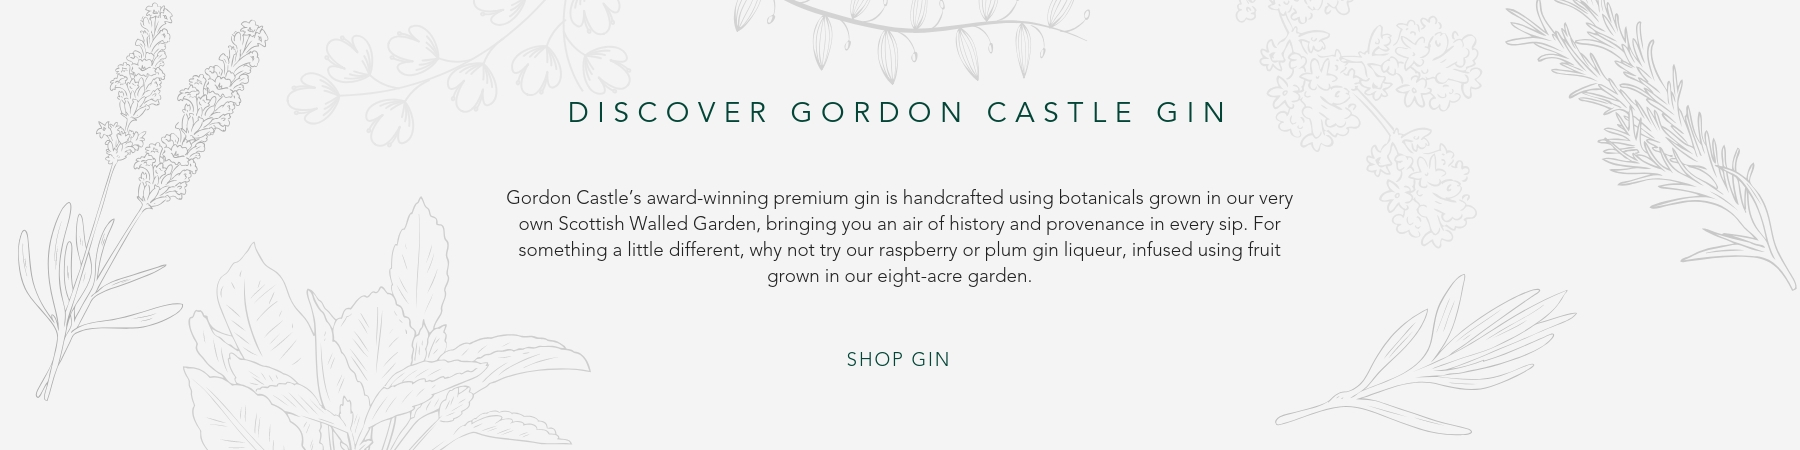 Homepage Block Gordon Castle Gin